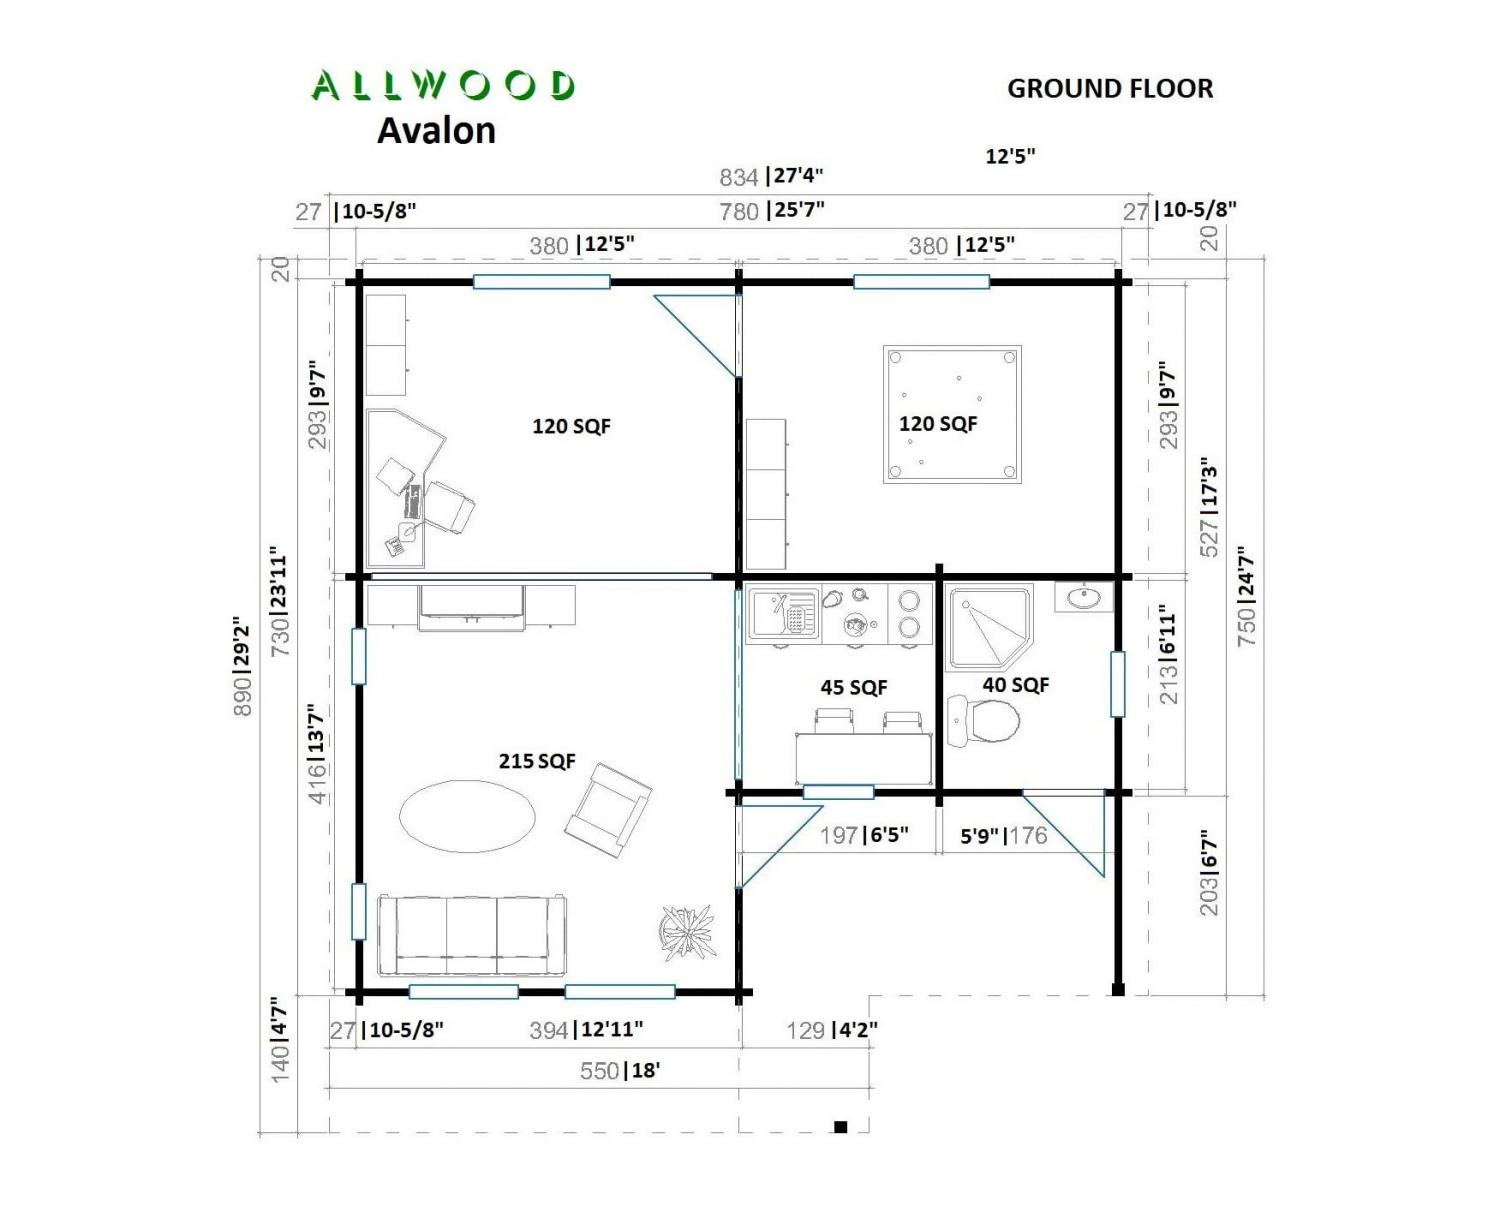 Allwood DIY Cabin Kit - 5-room cabin kit on Amazon